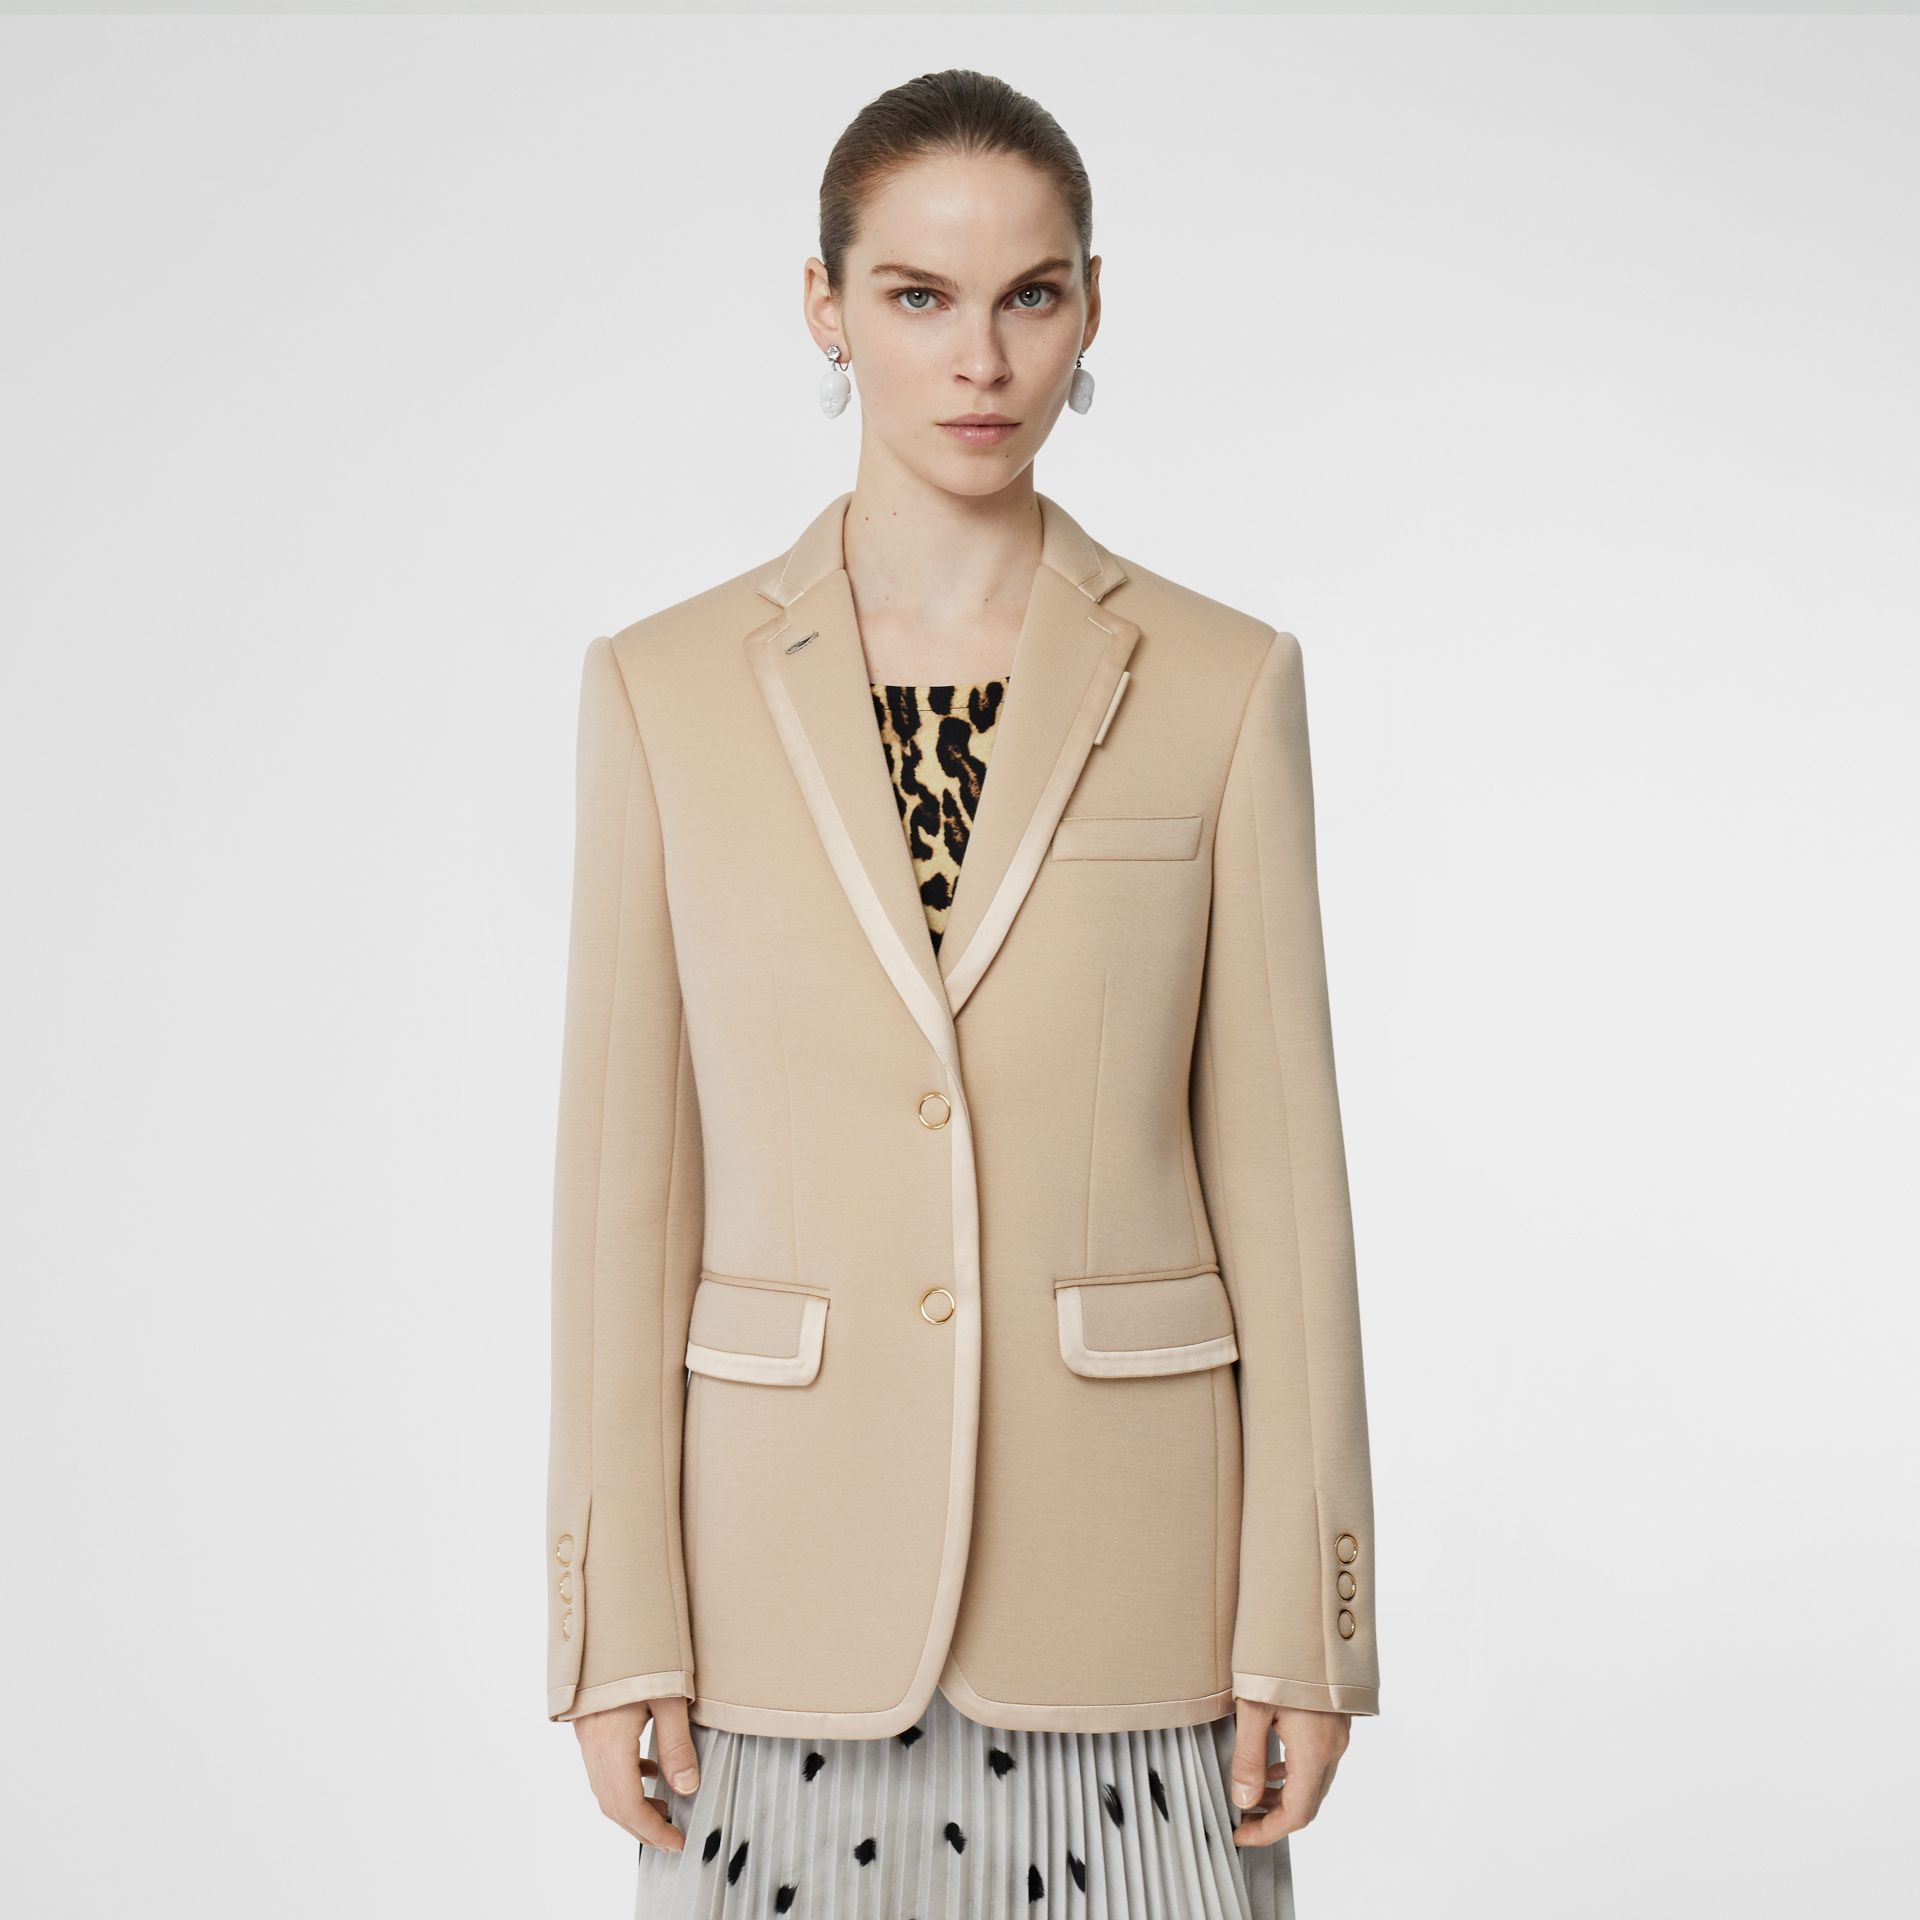 Silk Trim Neoprene Blazer in Teddy Beige - Women | Burberry Australia - gallery image 5